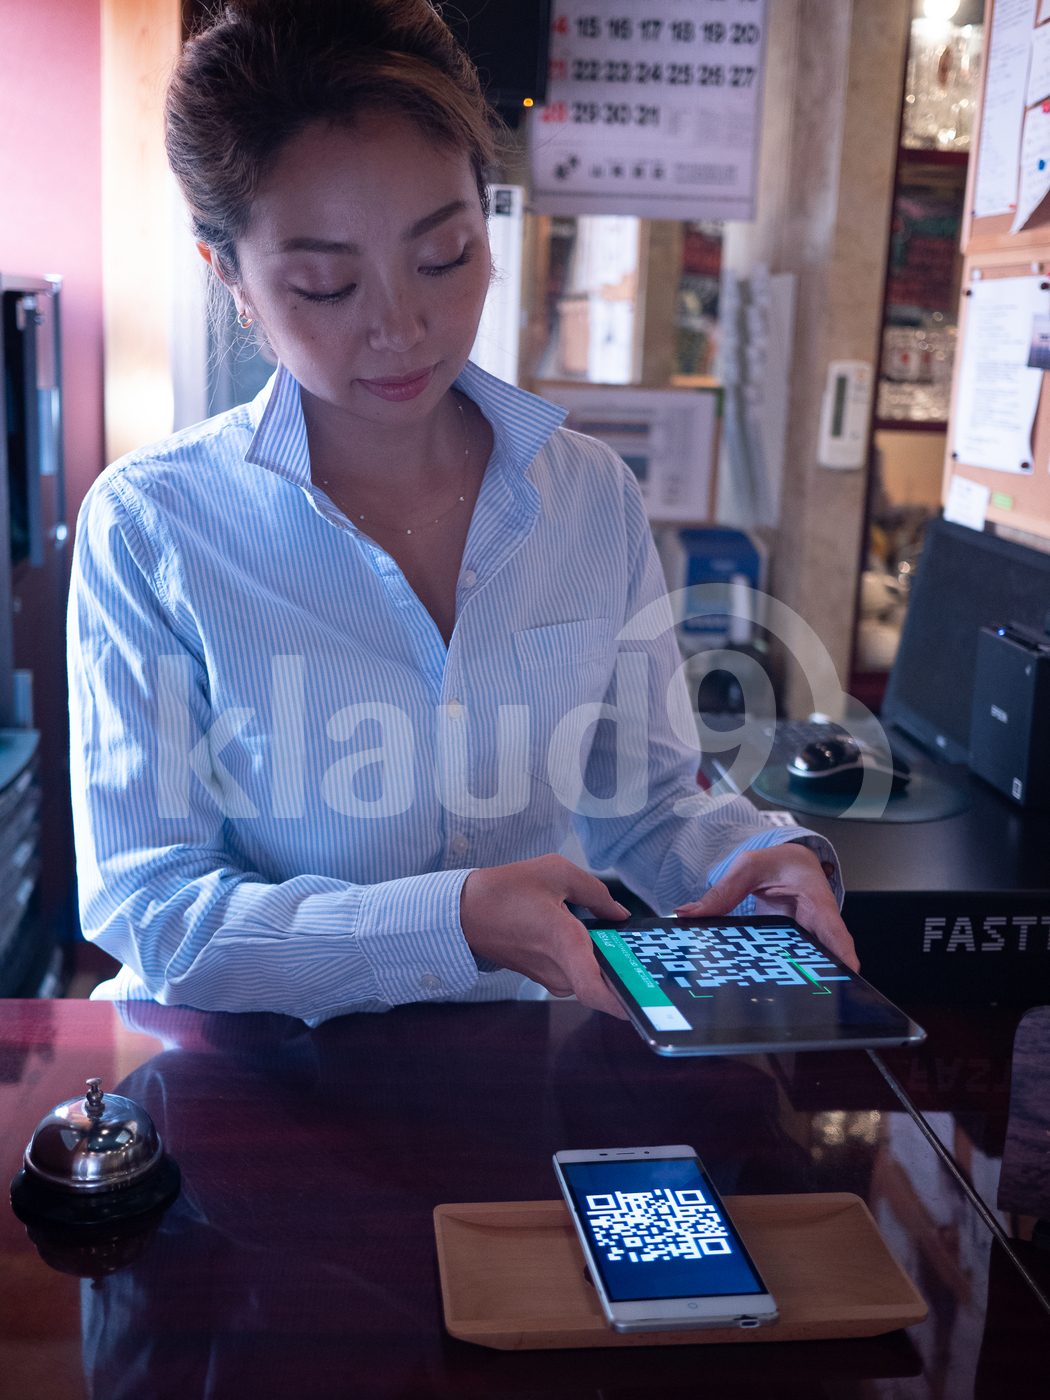 Woman scanning with QR code with tablet